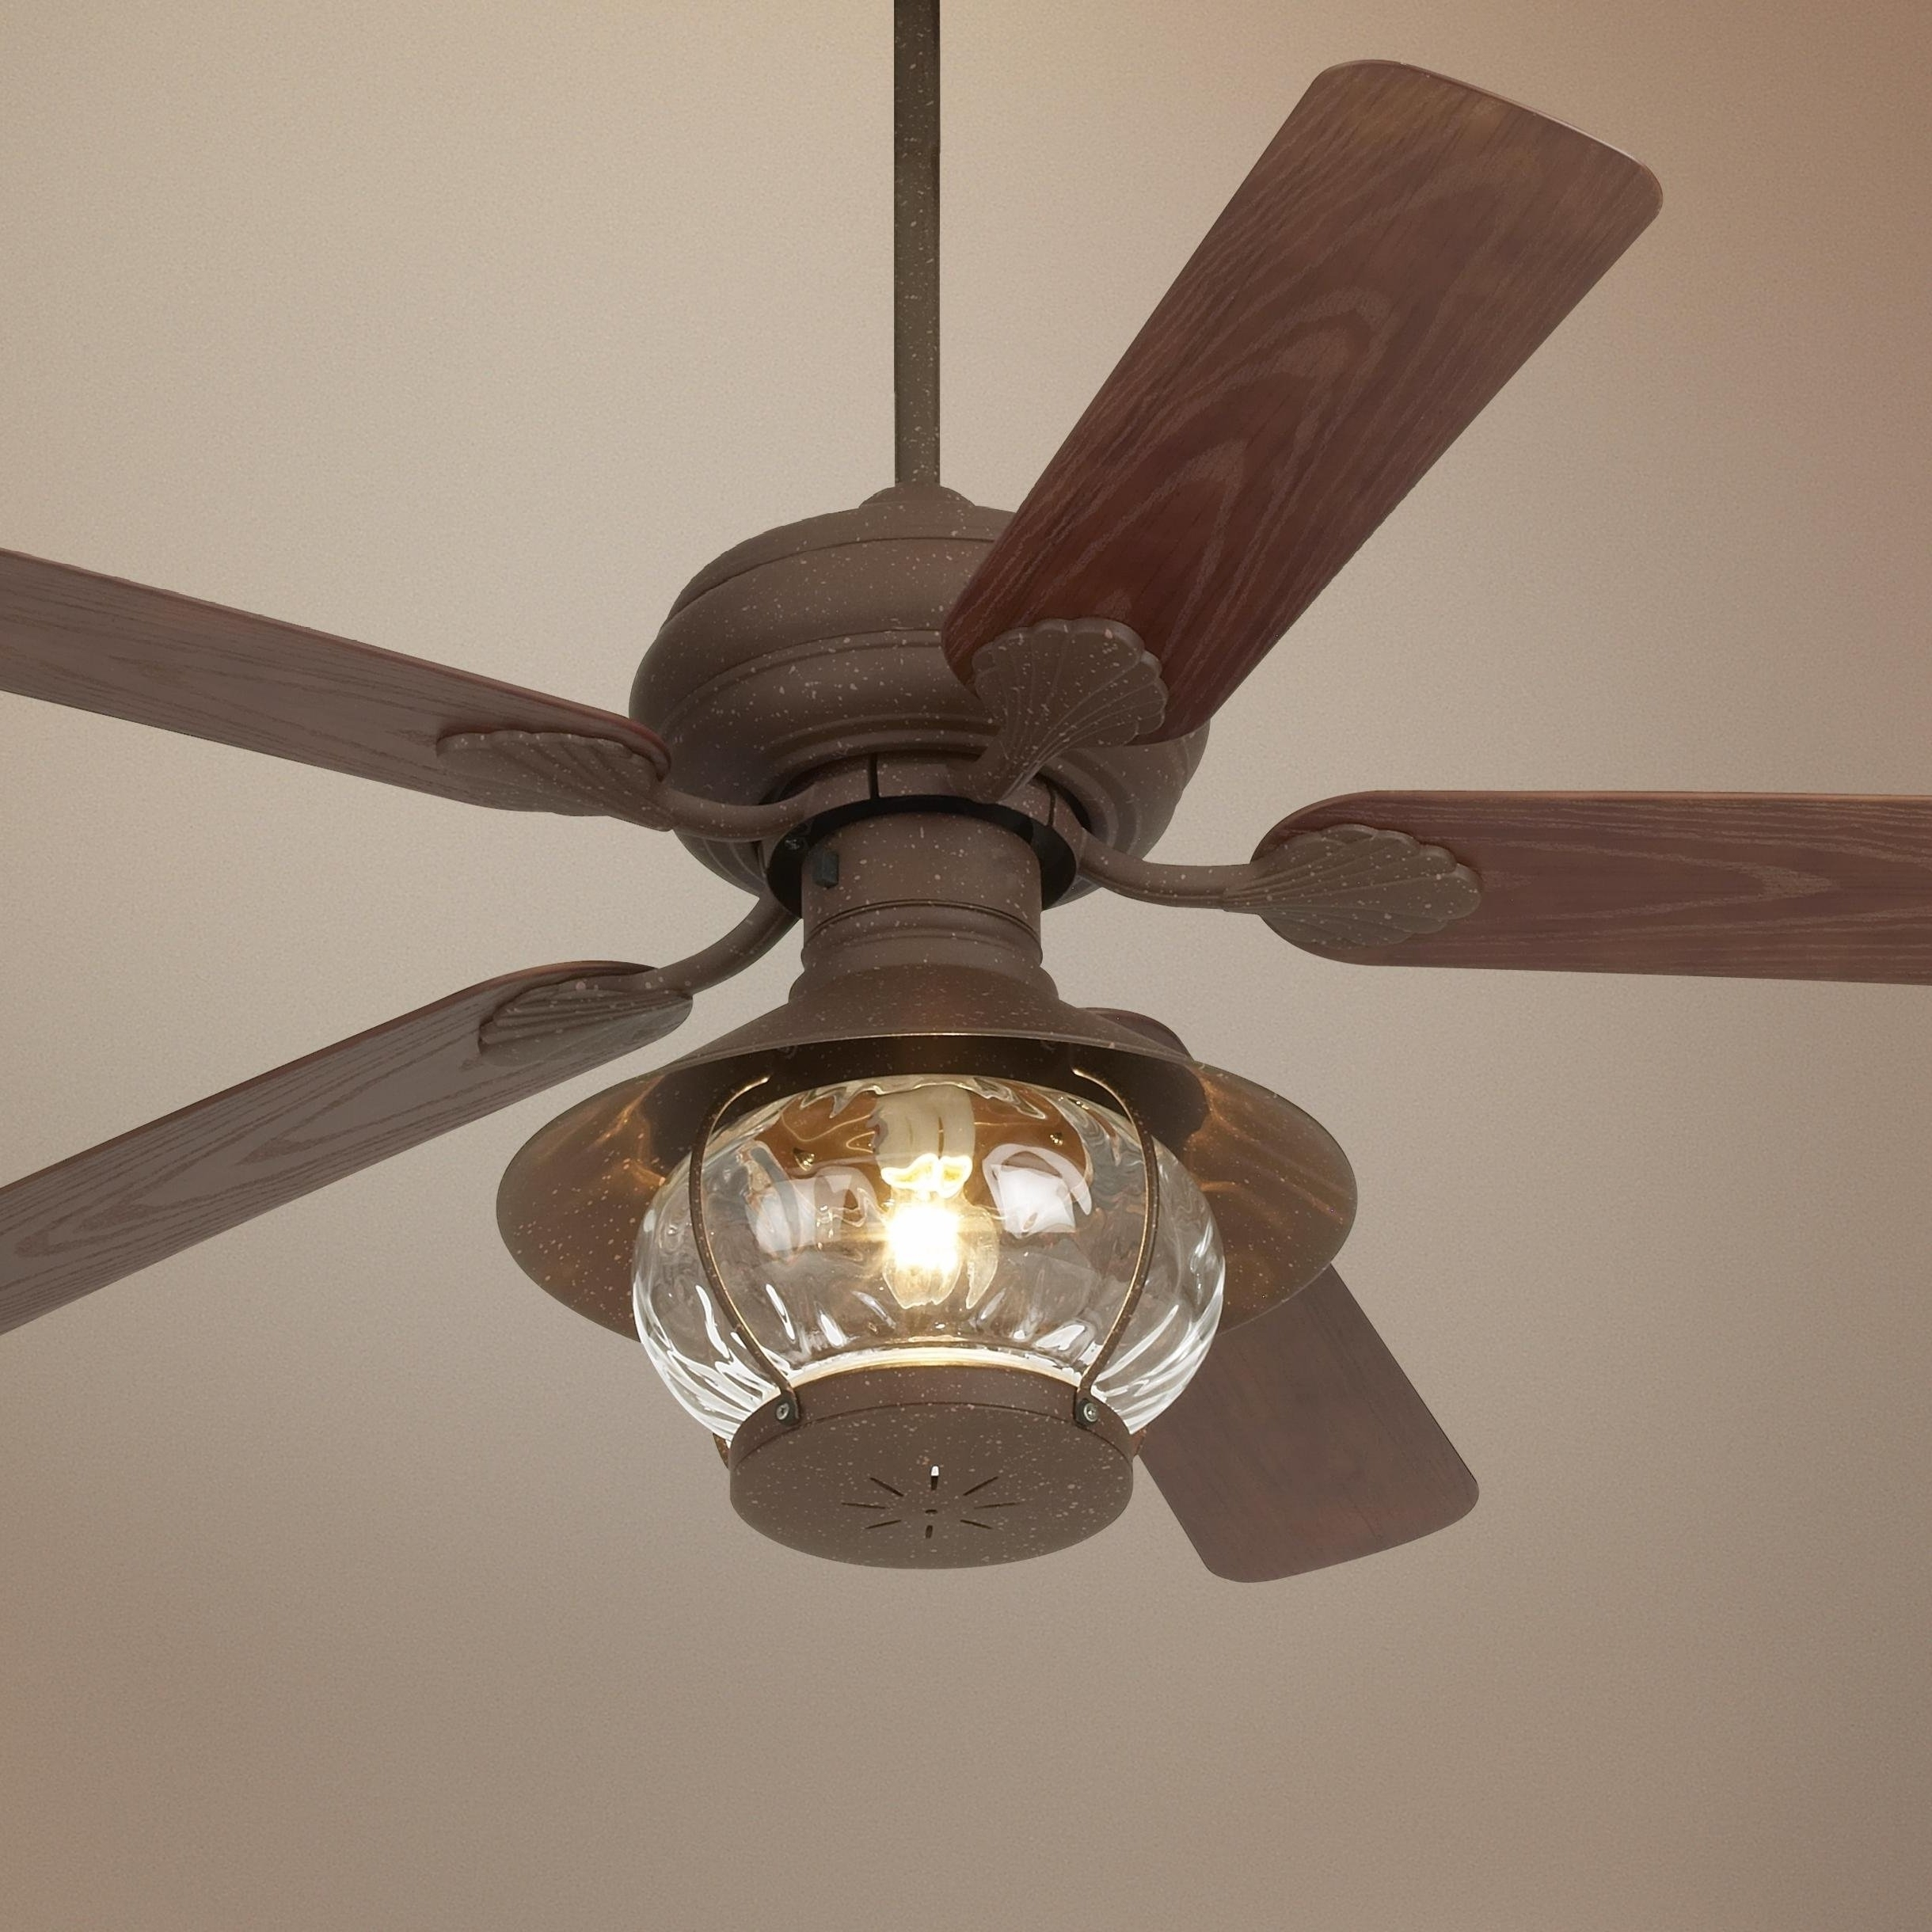 Rustic Outdoor Ceiling Fans With Lights Pertaining To Well Liked Radiant Ceiling Rustic Outdoor Ceiling Fans Western Light Pertaining (View 15 of 20)